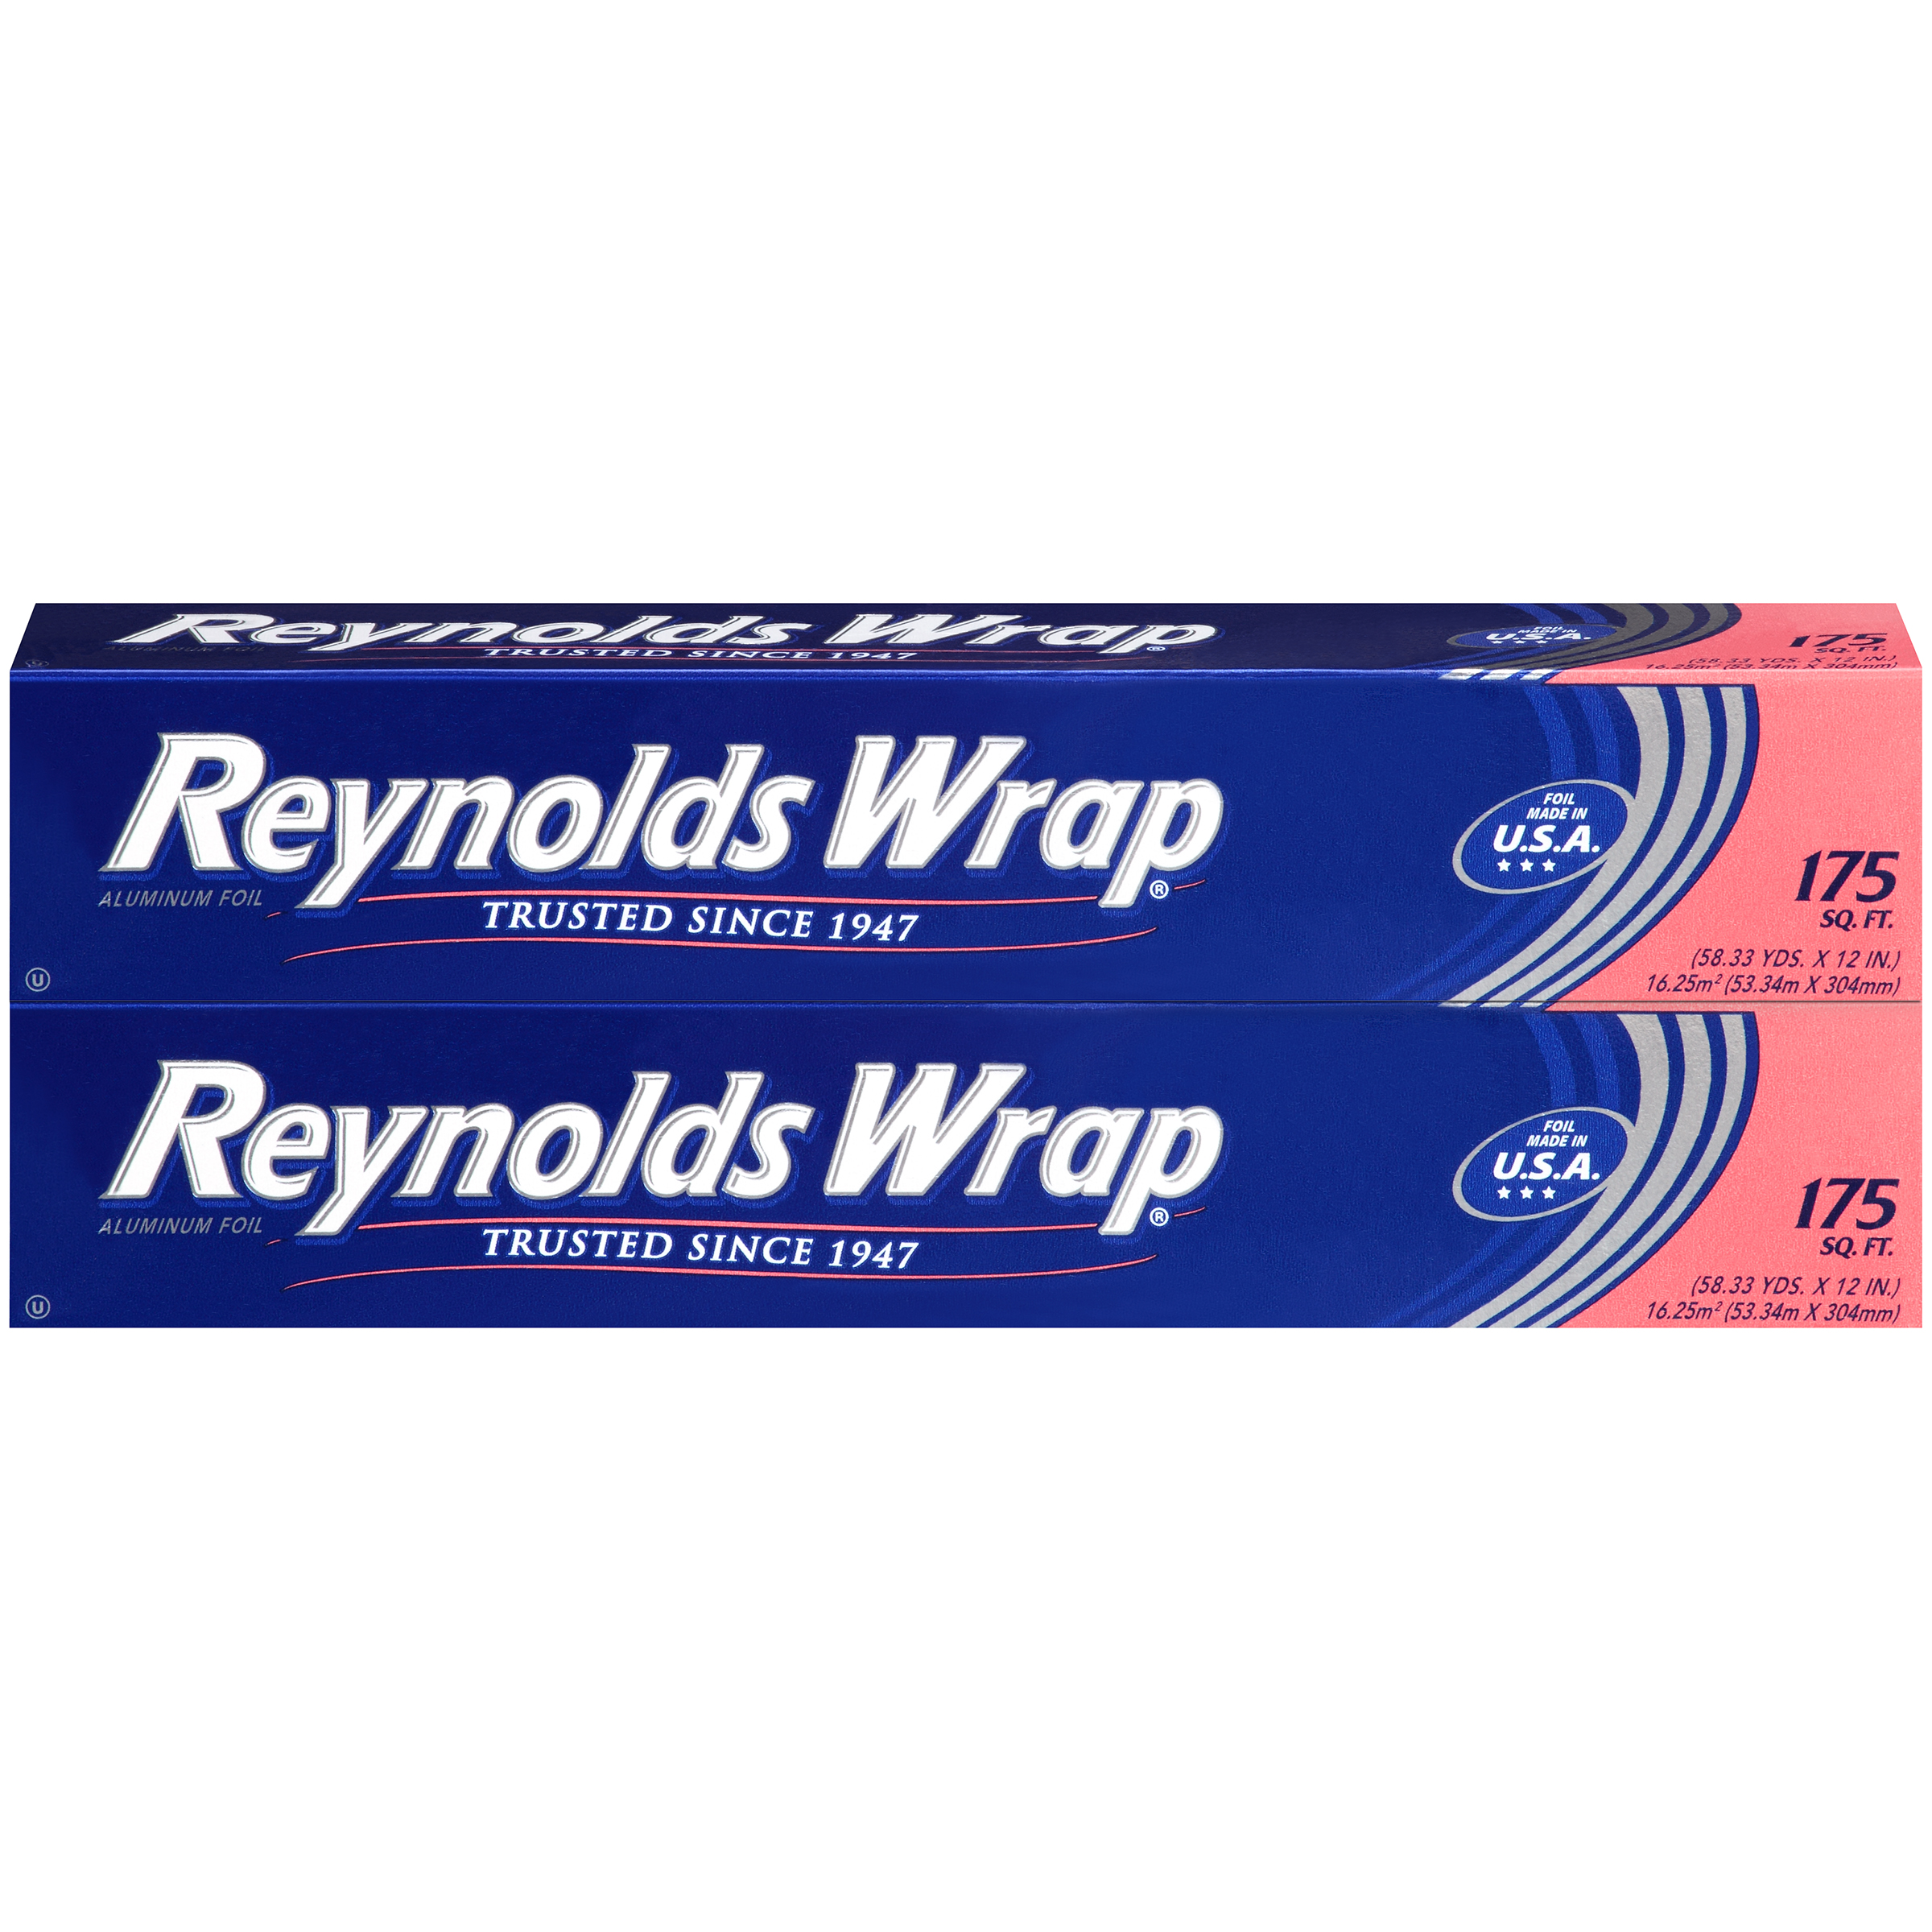 Reynolds Wrap Aluminum Foil (175 Square Foot Roll, Pack of 2)